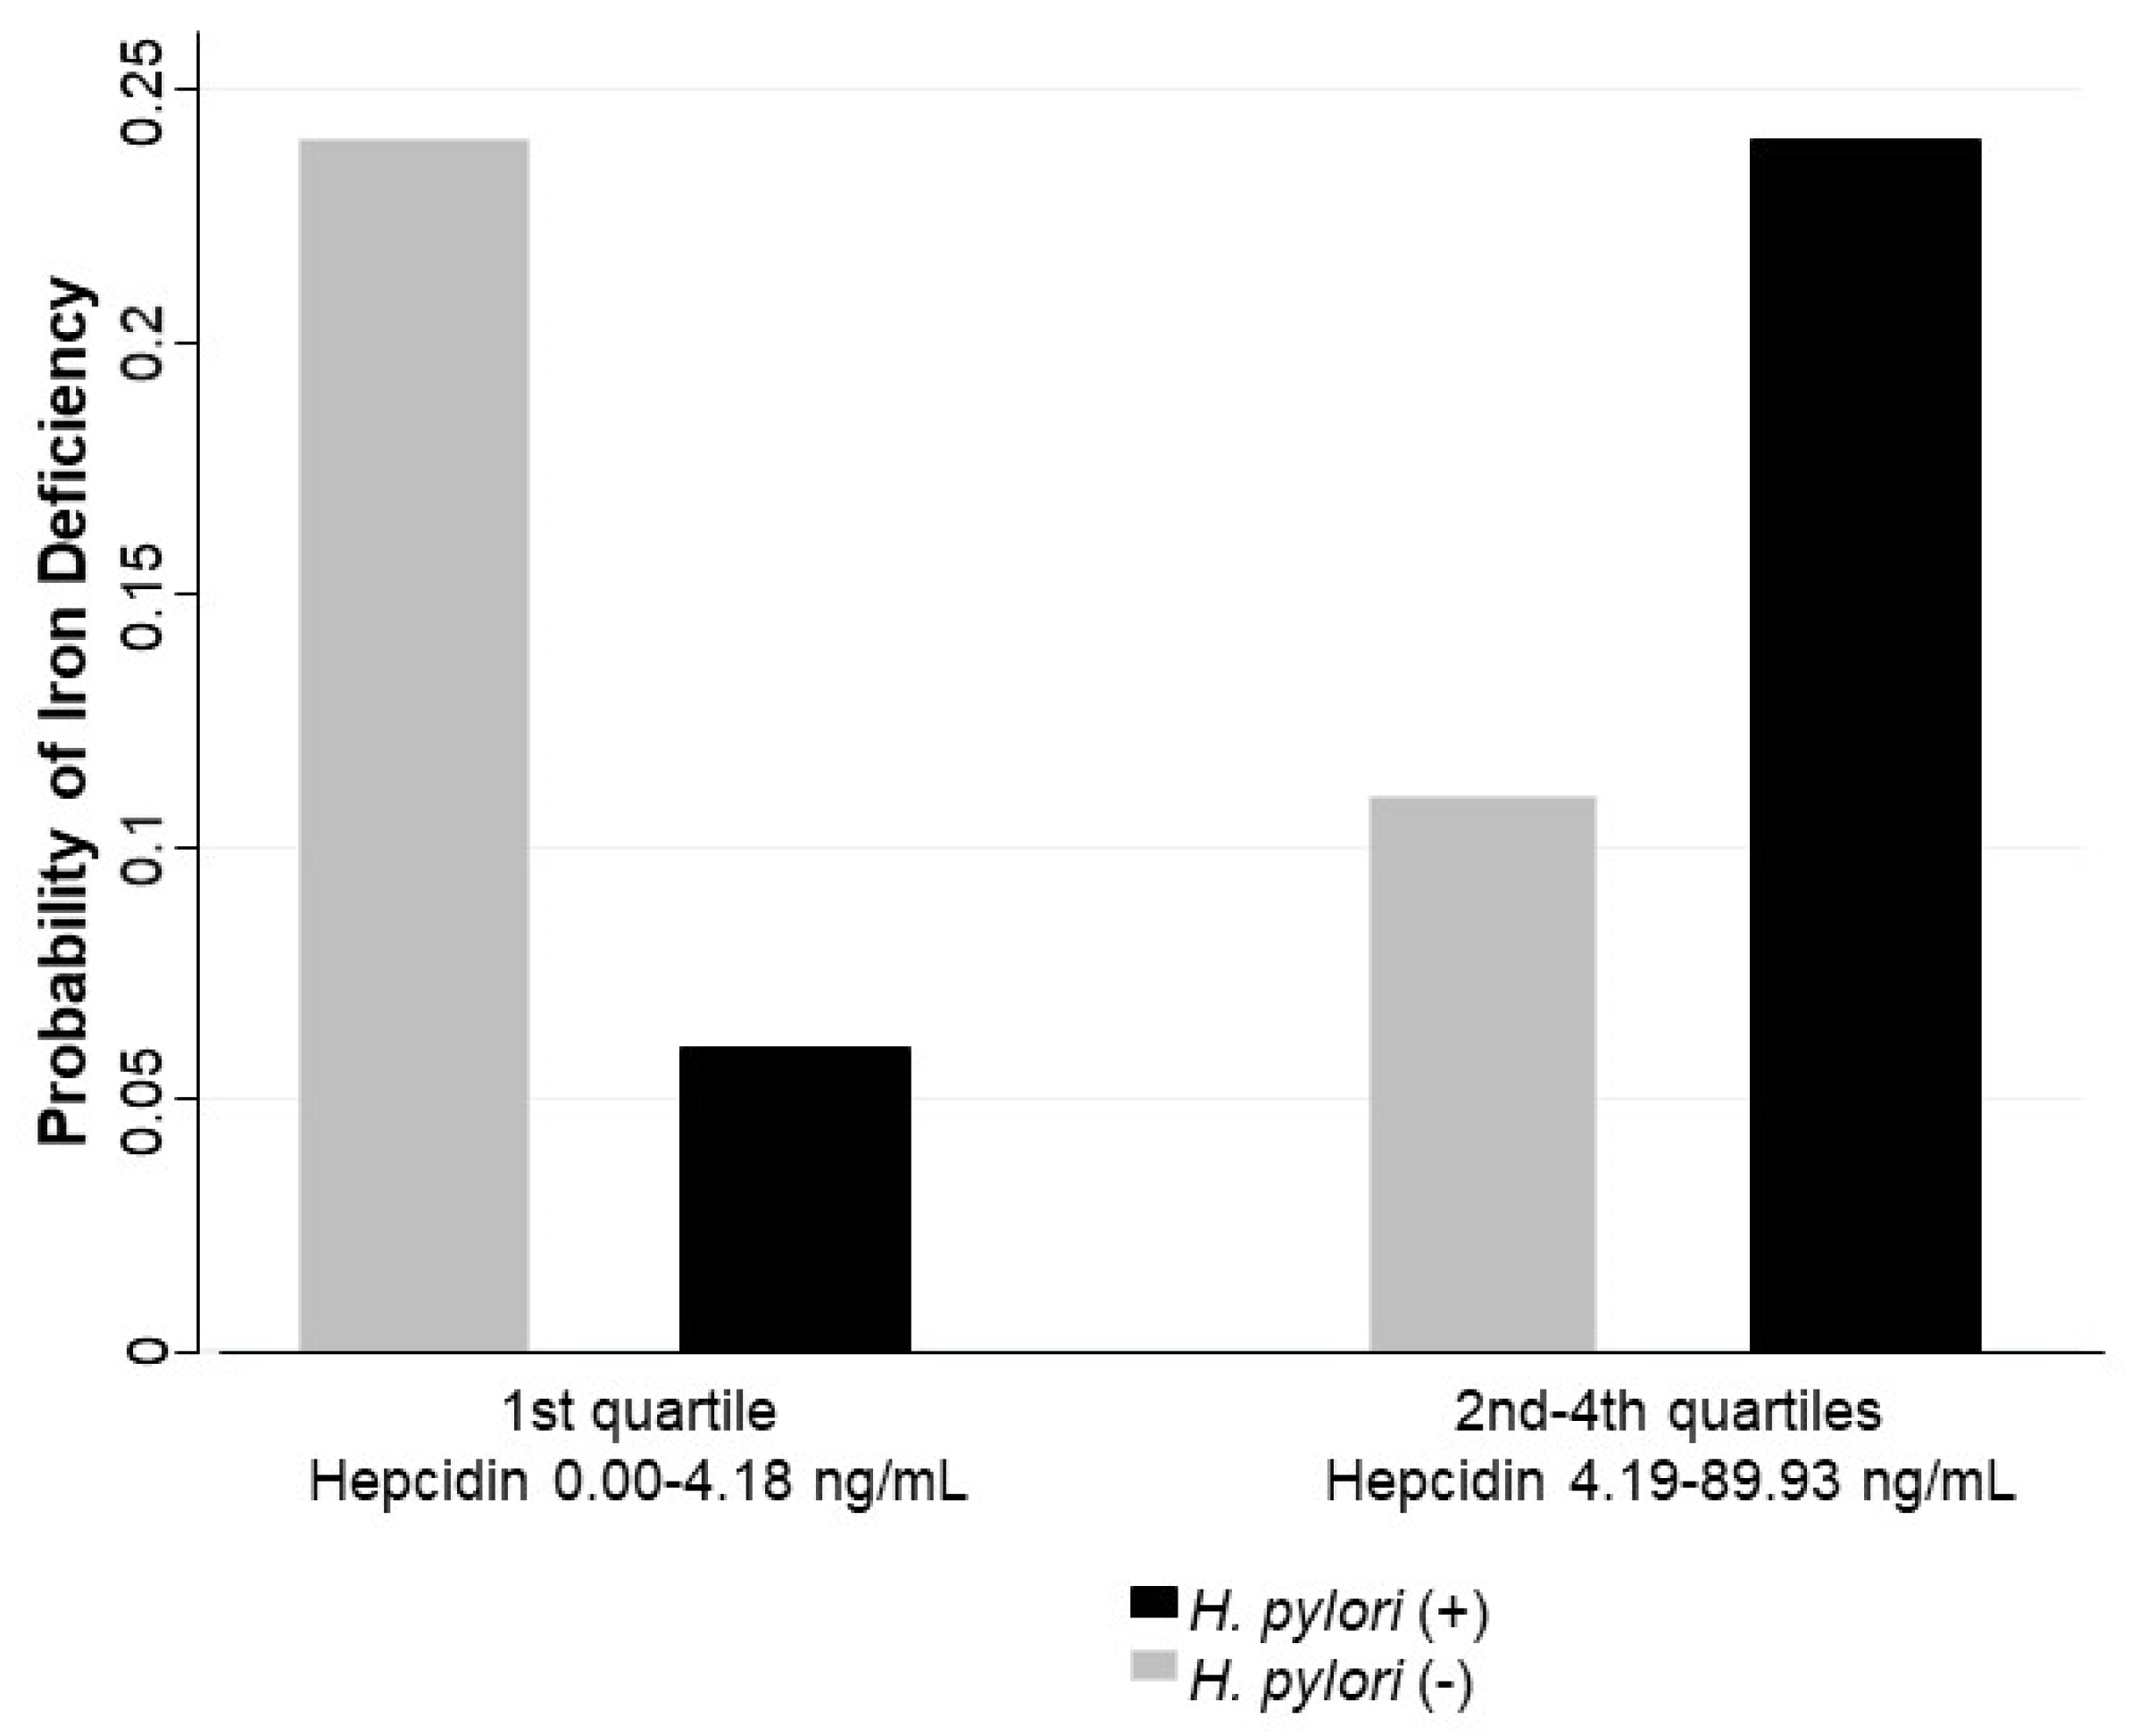 Nutrients | Free Full-Text | Association between Active H